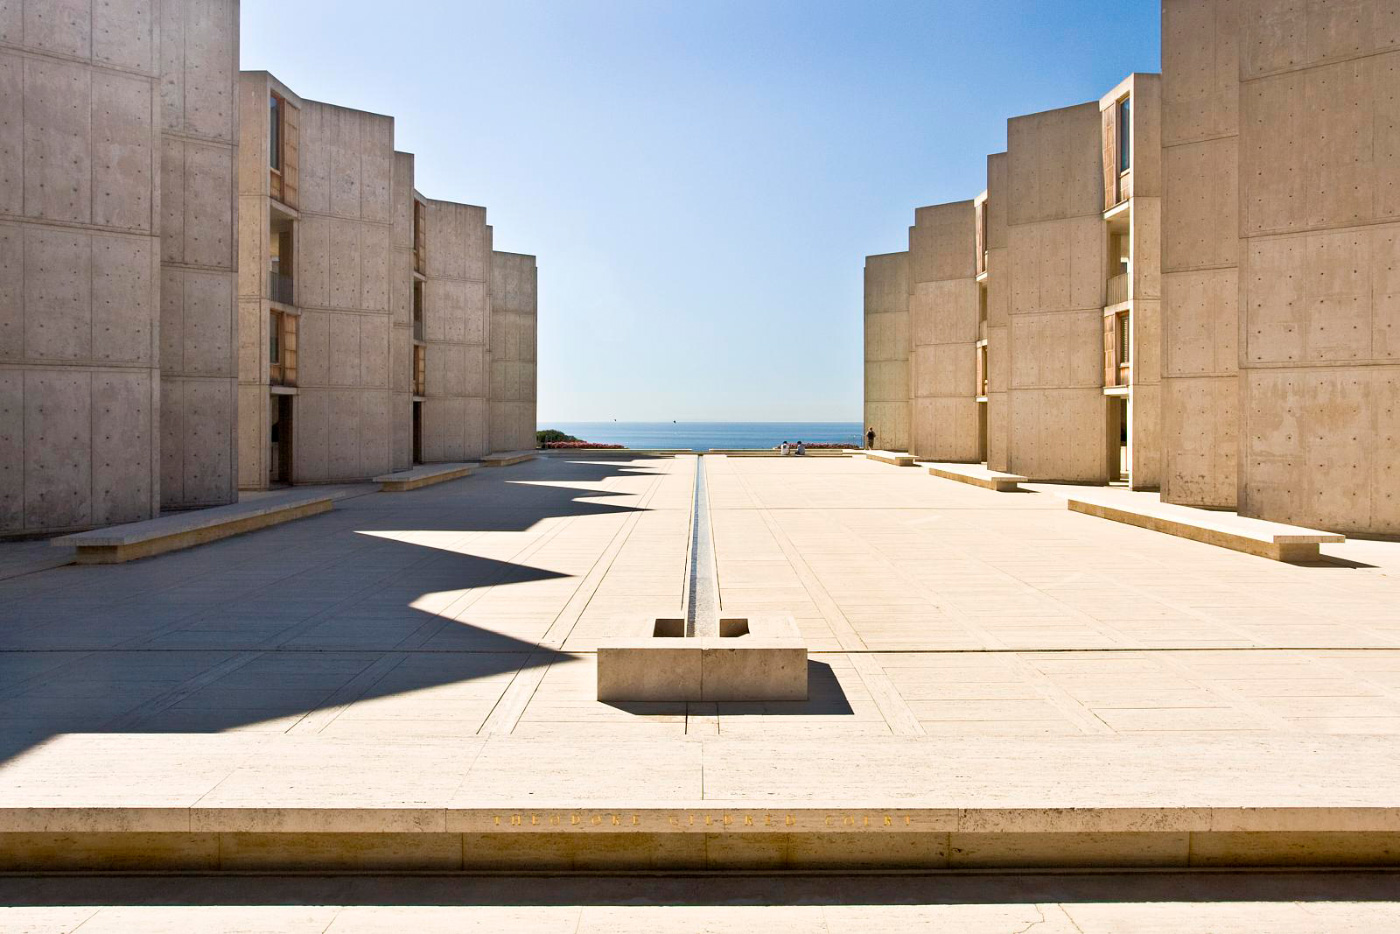 Photo of the Salk Institute's concrete plaza